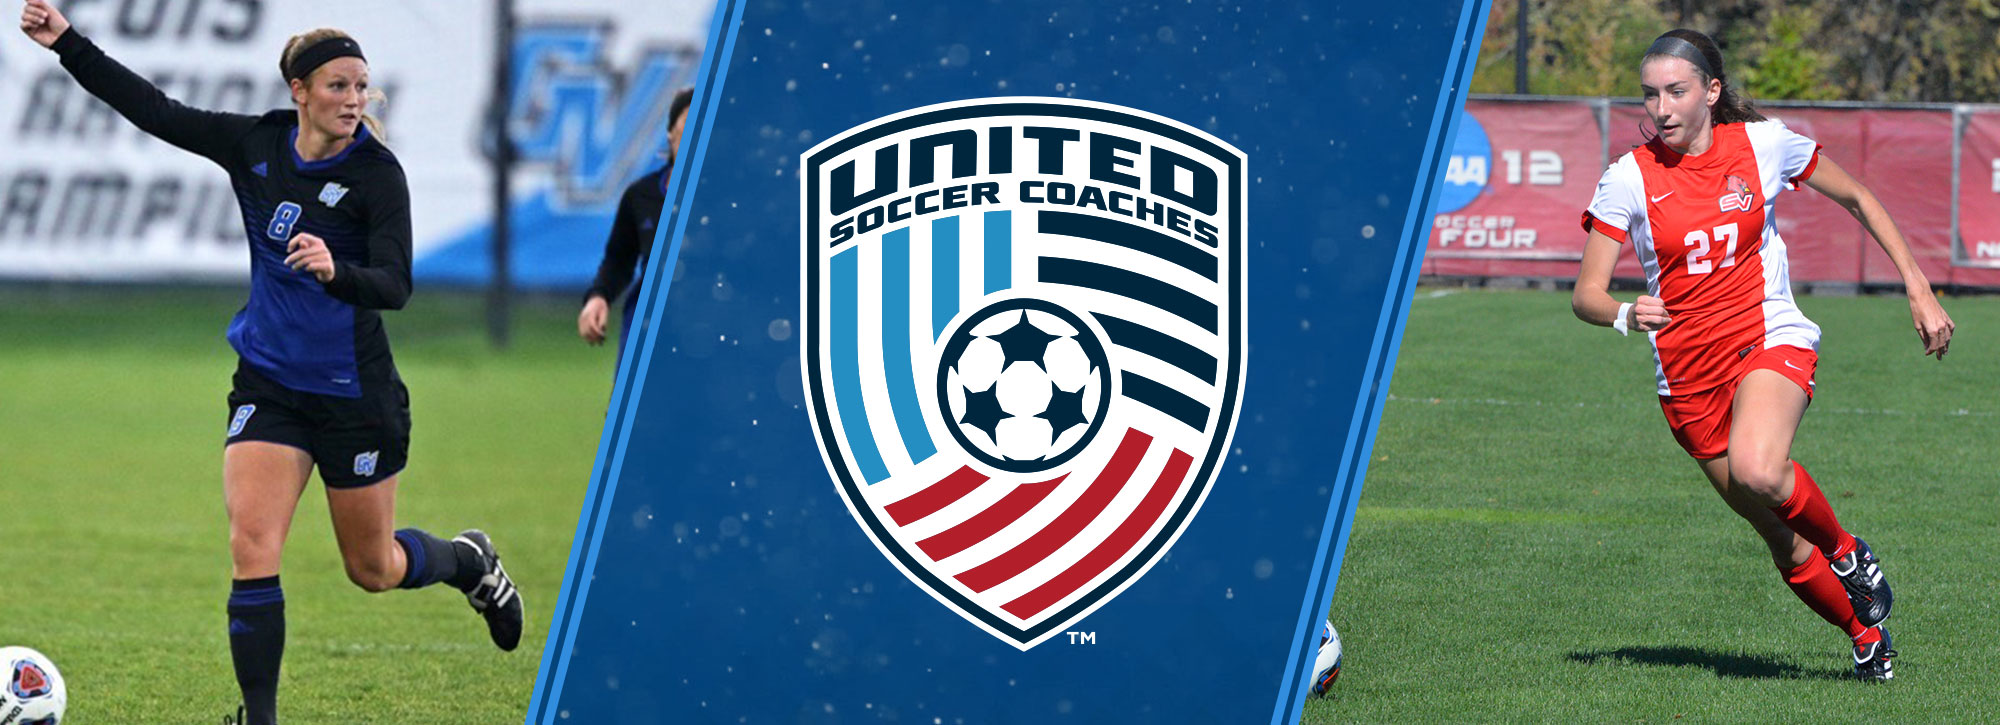 Grand Valley State No. 3, Saginaw Valley No. 13 in Latest United Soccer Coaches Women's Soccer Rankings